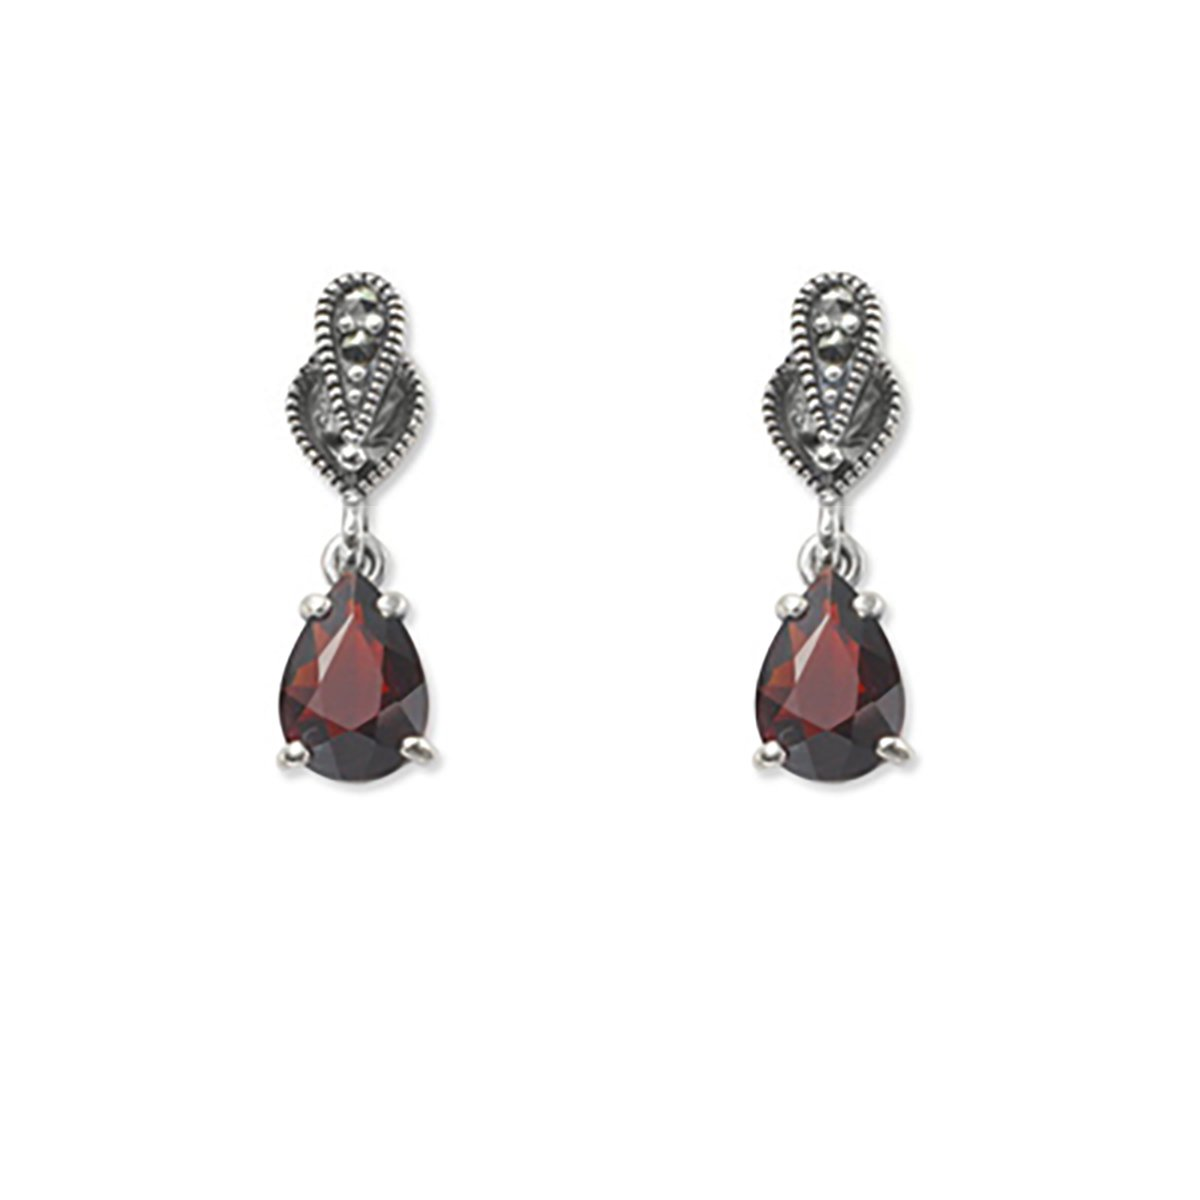 Marcasite Collection Earrings Silver / Black Decorative Marcasite with Garnet Teardrop Earrings in Sterling Silver